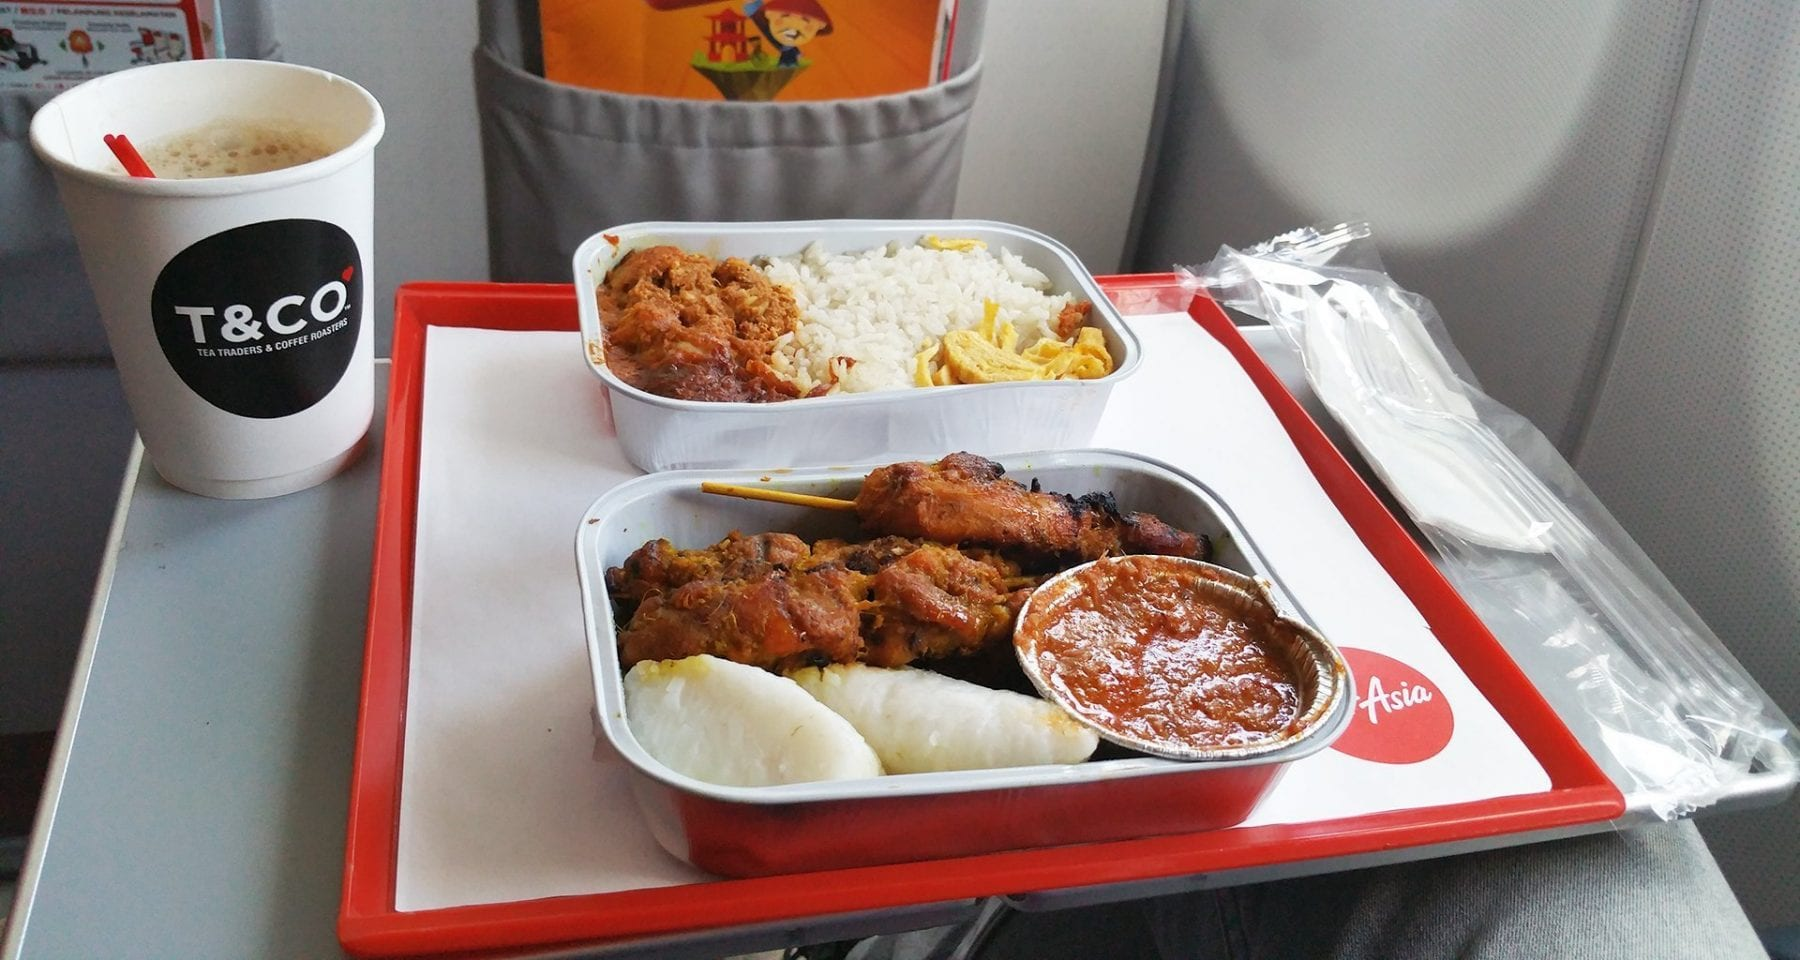 Air Asia Chicken Satay and Nasi Lemak meals